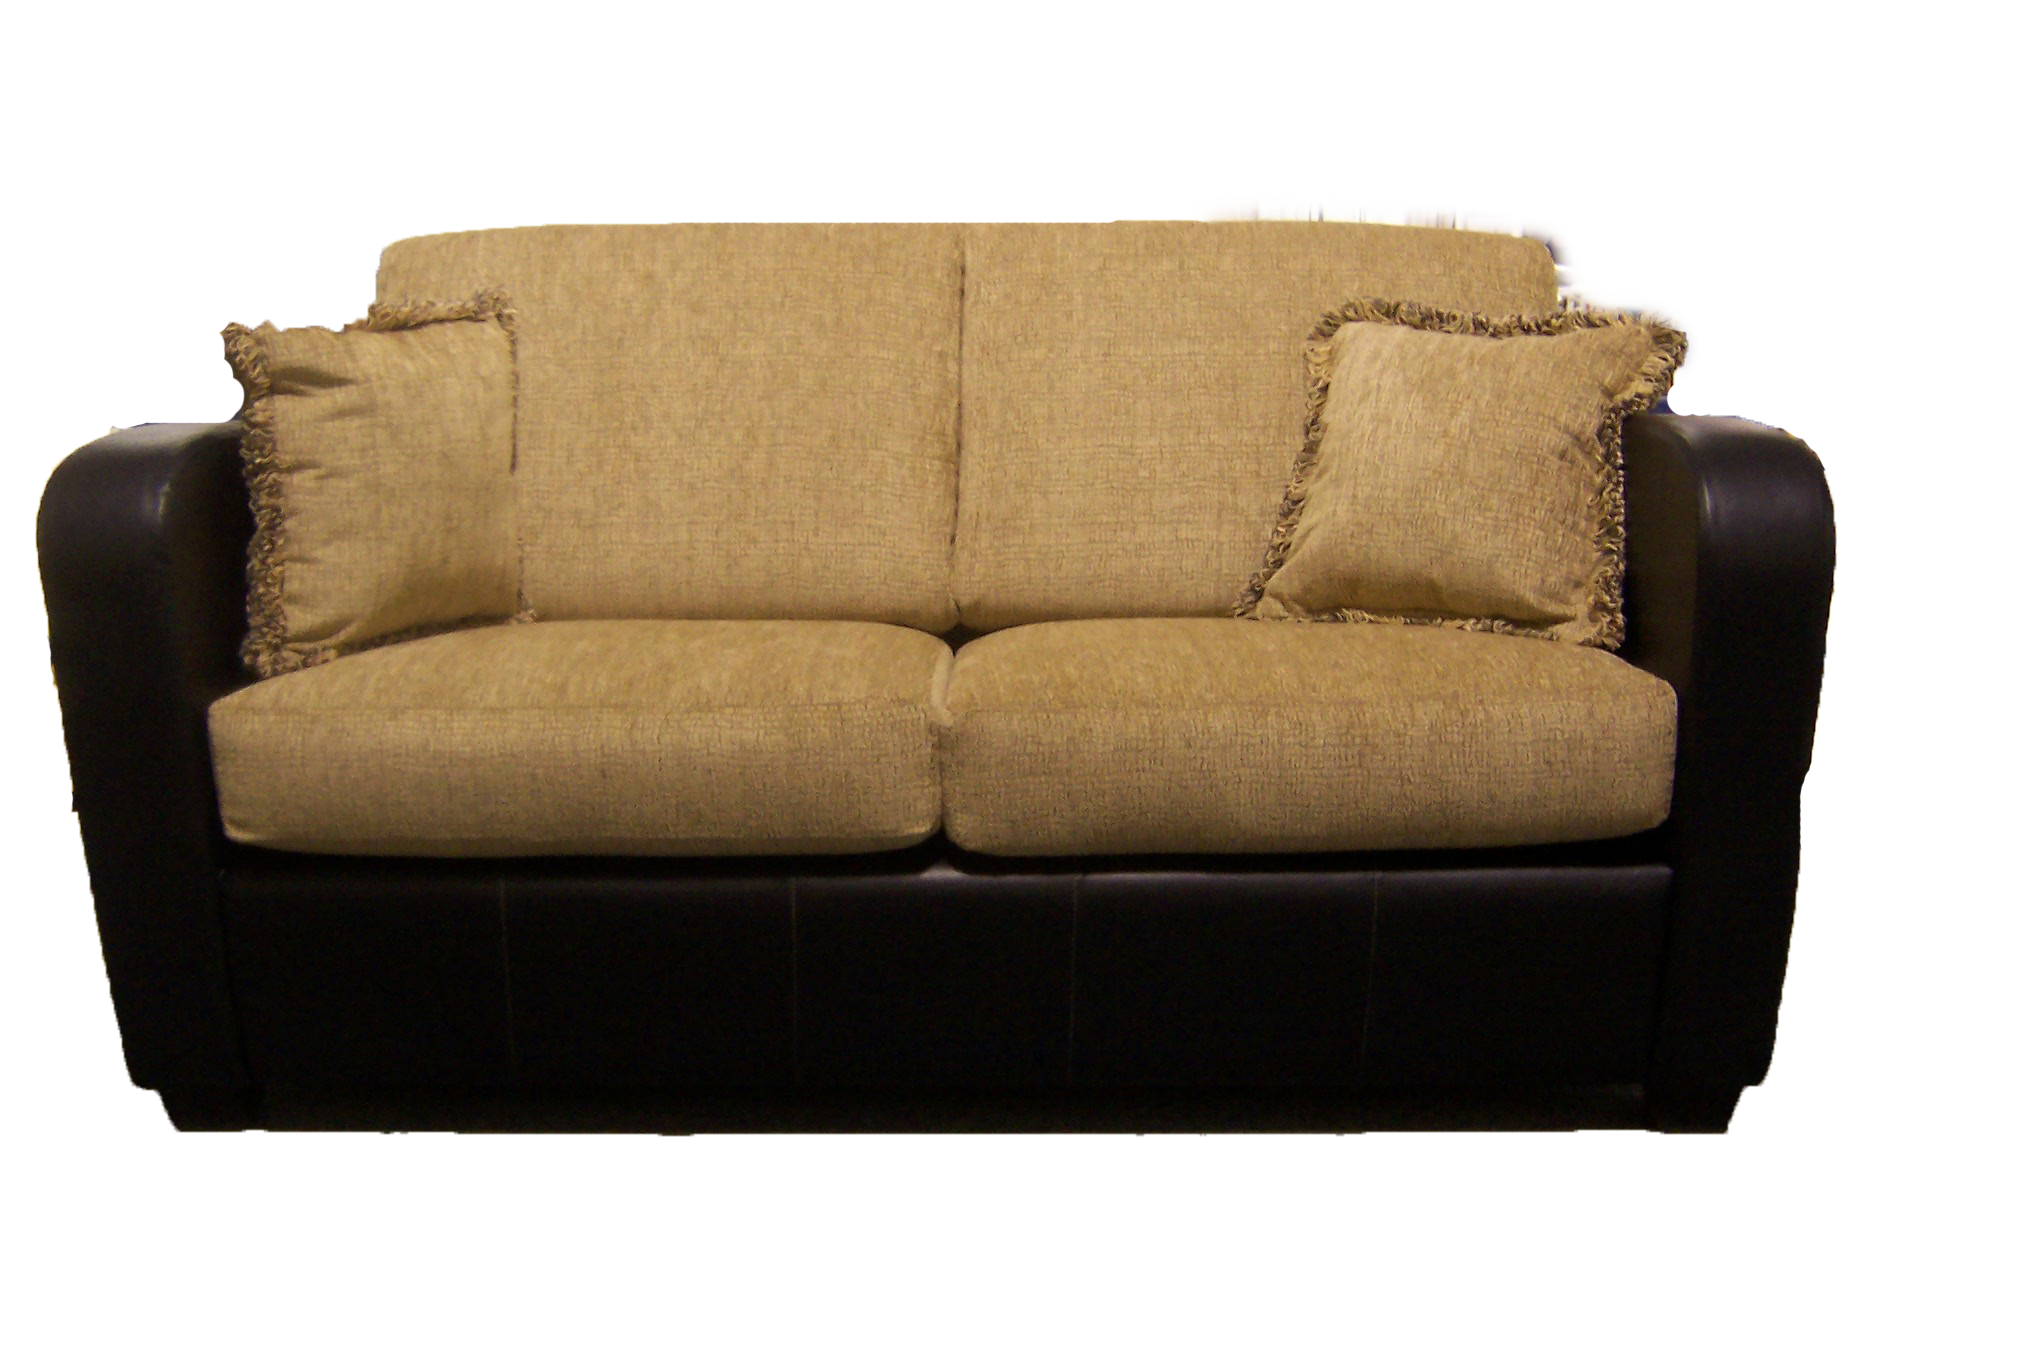 Couch HD PNG - 91461